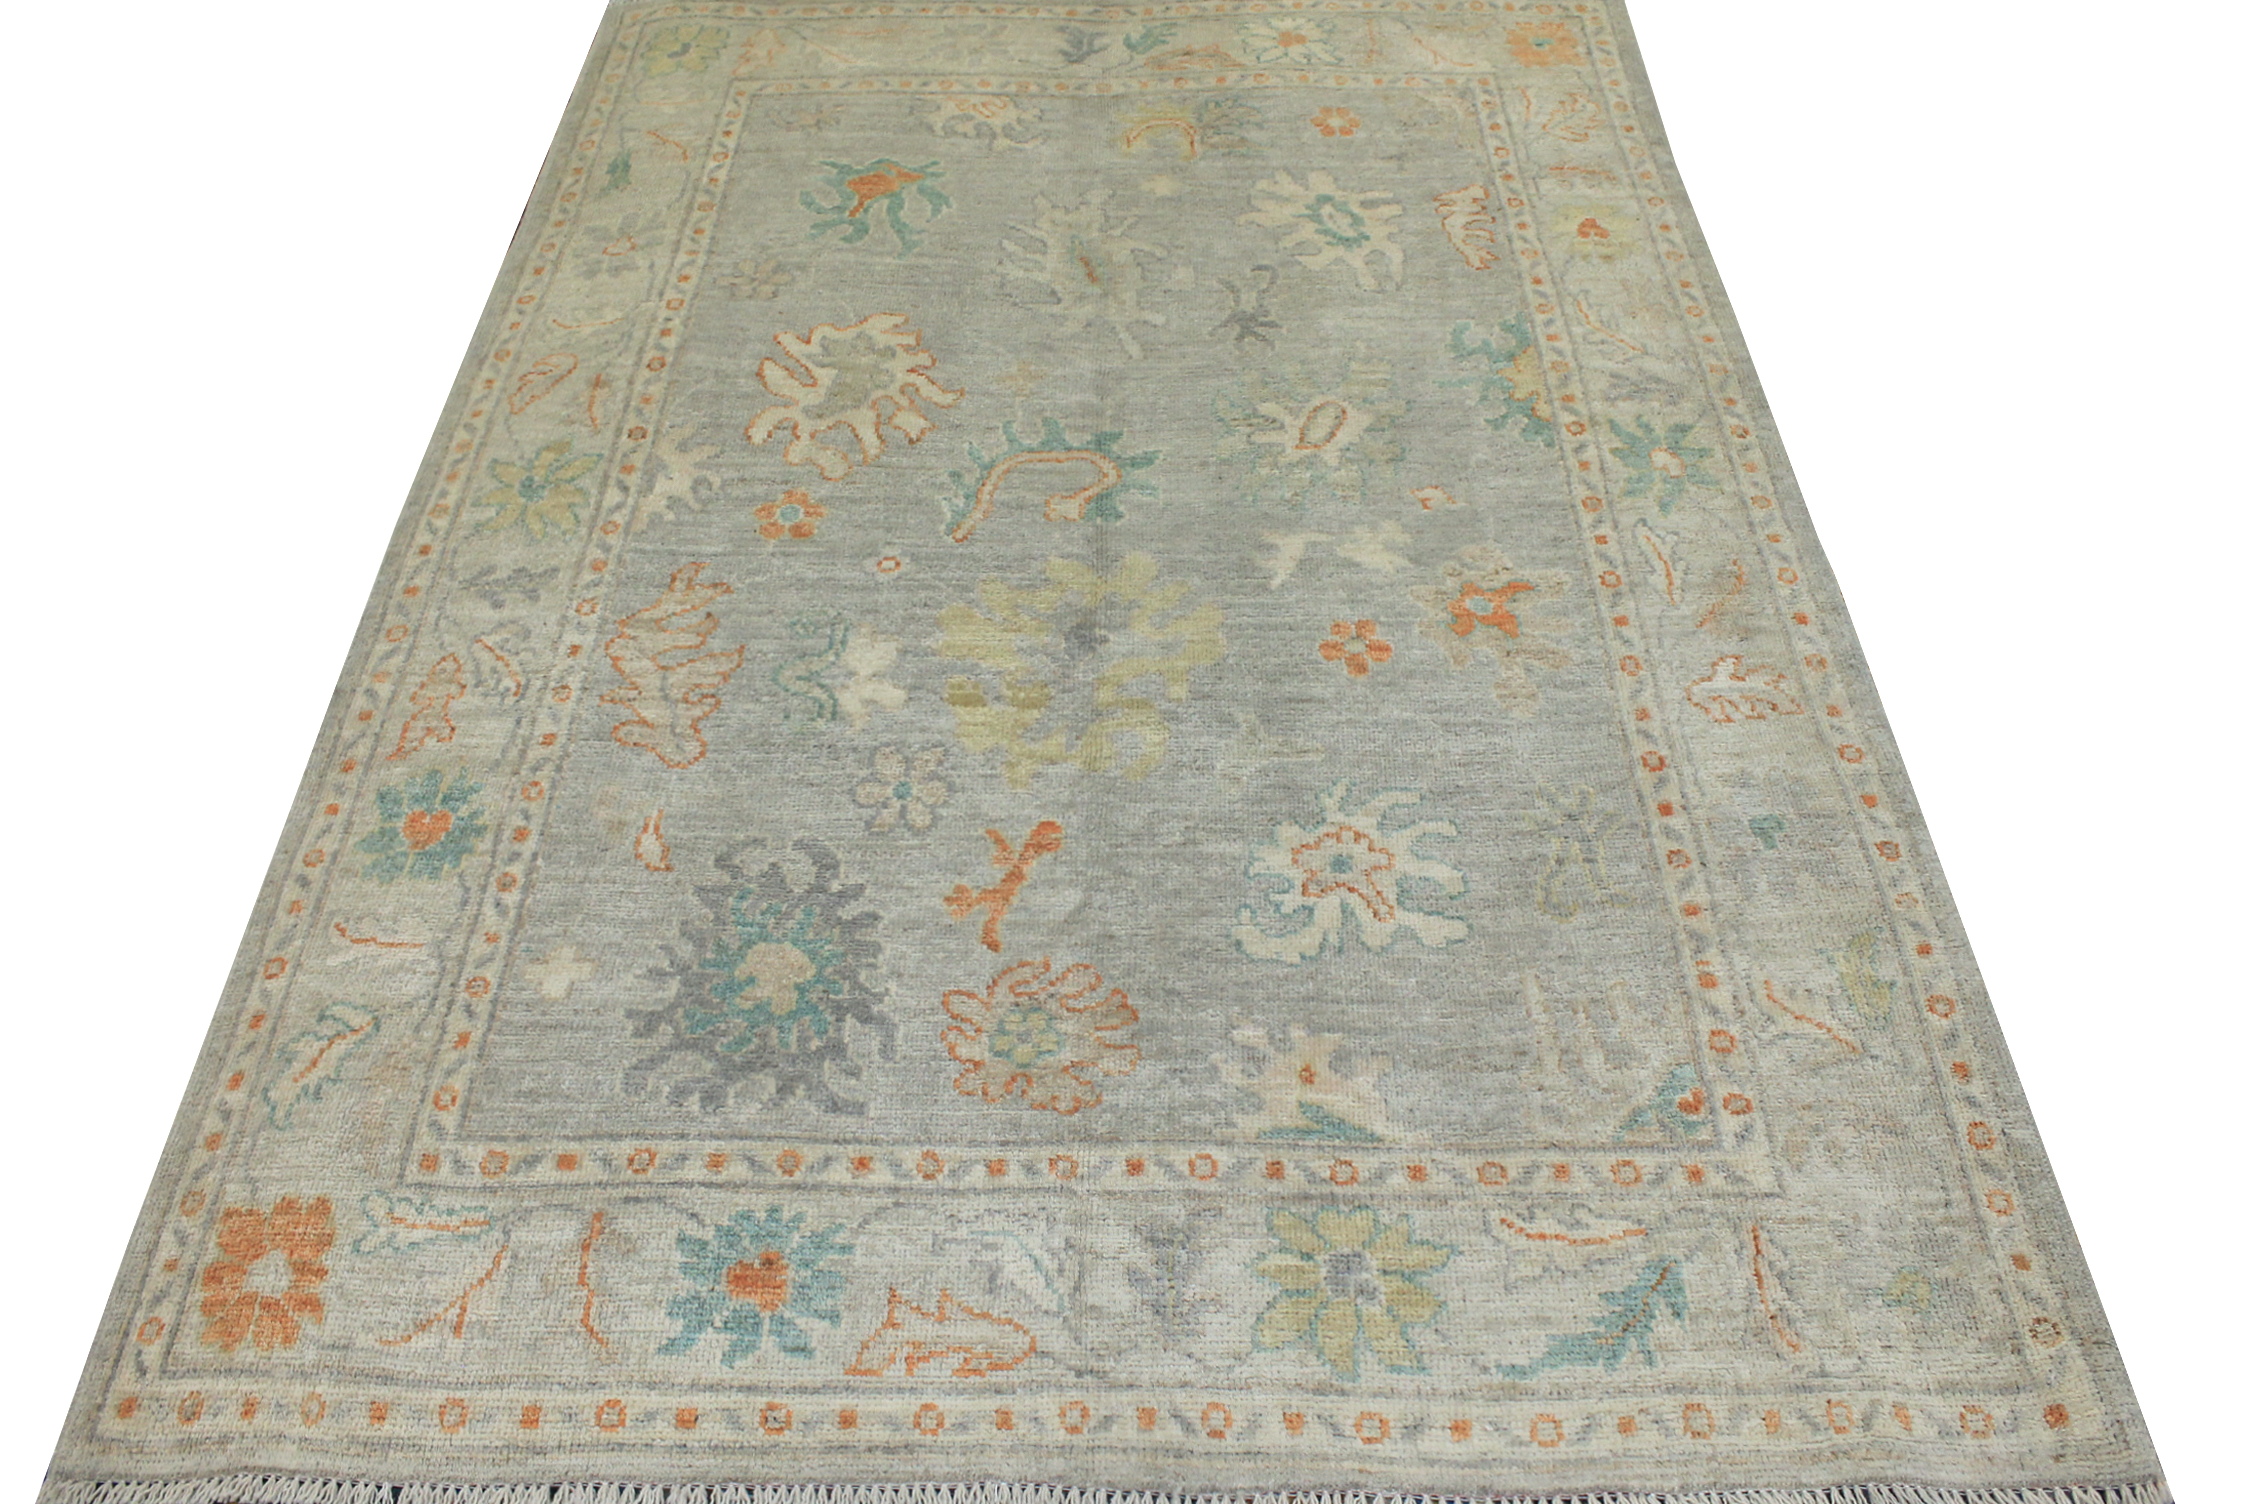 5x7/8  Hand Knotted Wool Area Rug - MR022814